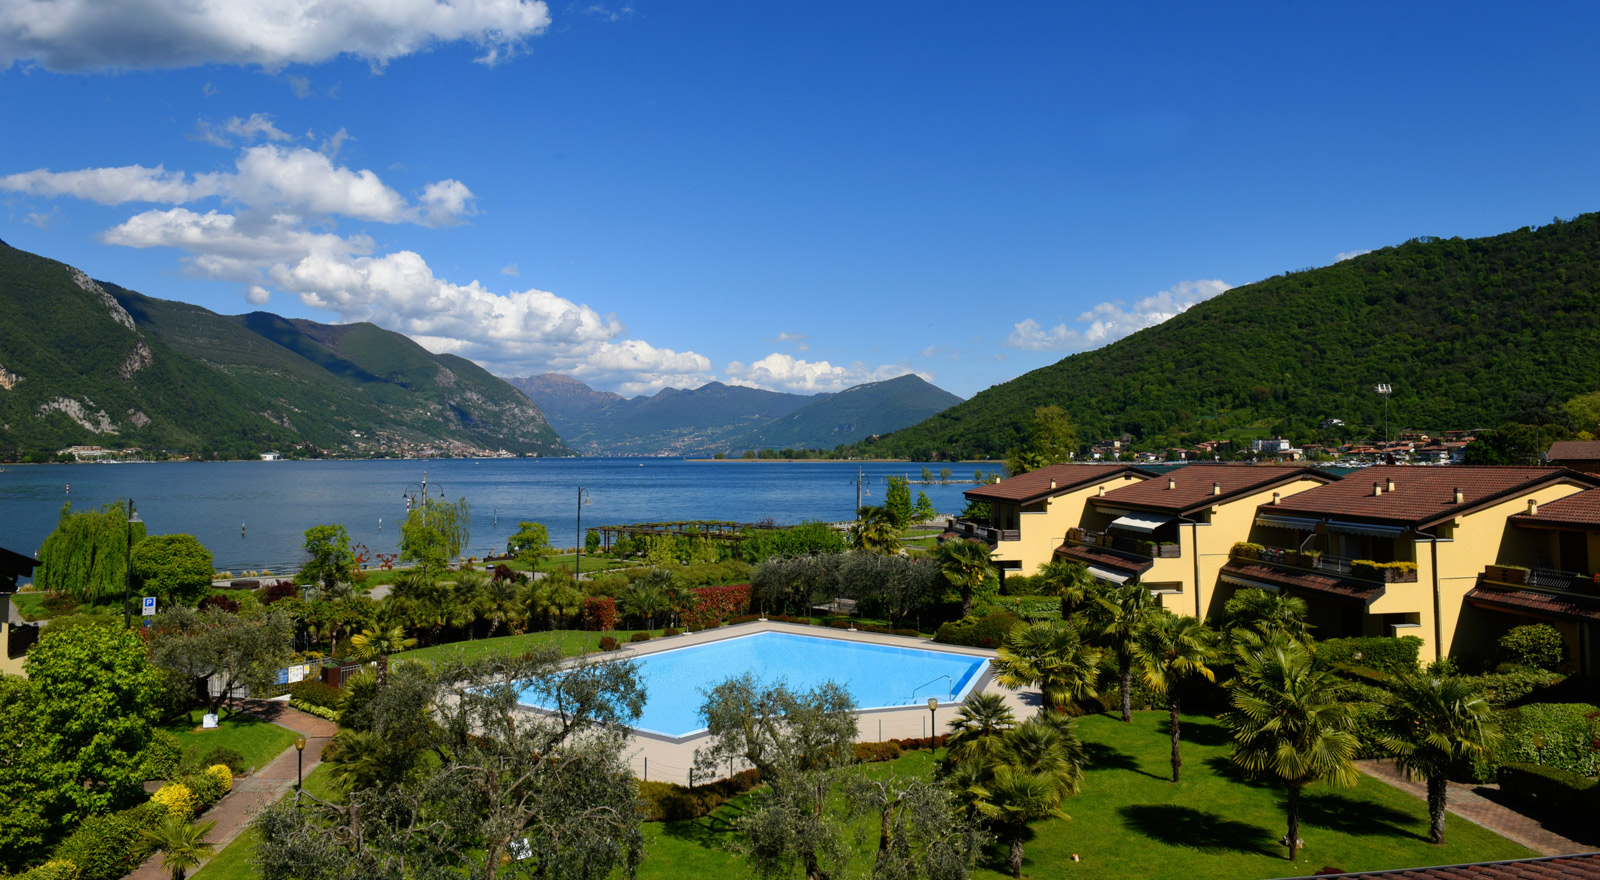 Hotel b b sul lago d 39 iseo 4 stelle con piscina hotel ulivi for Piscina iseo